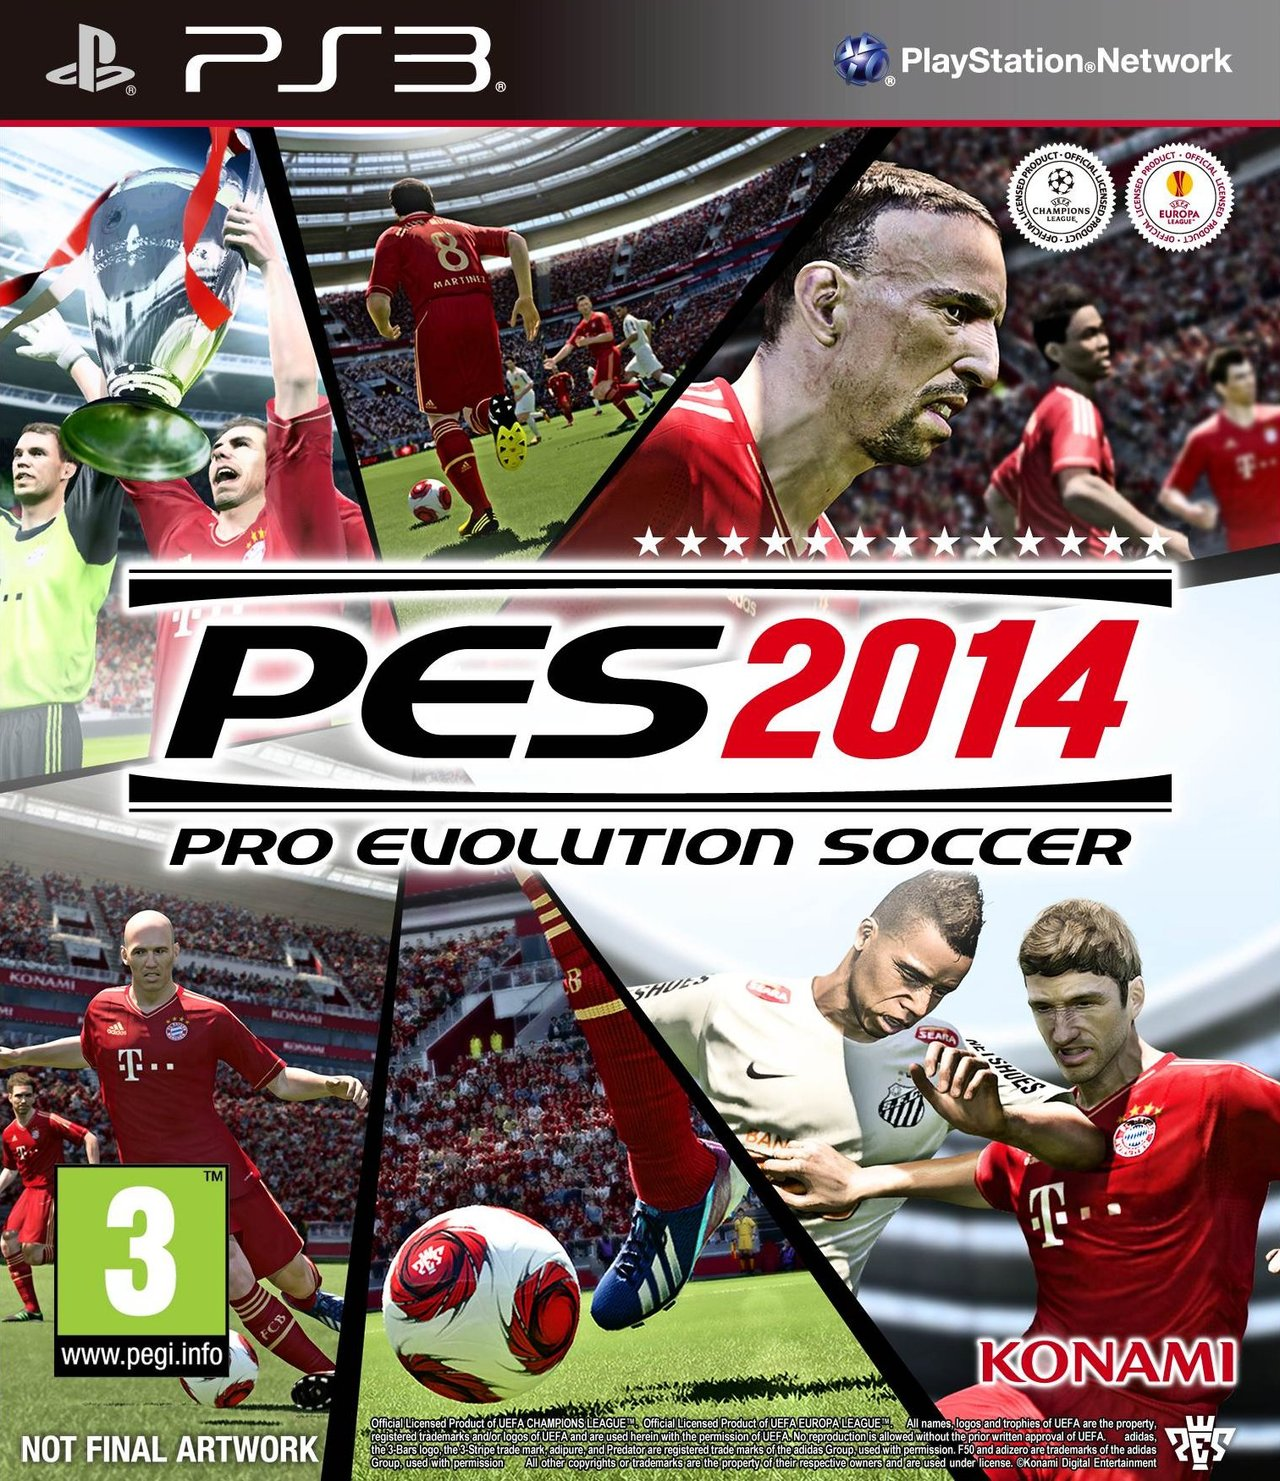 [Multi] Pro Evolution Soccer 2014 PS3